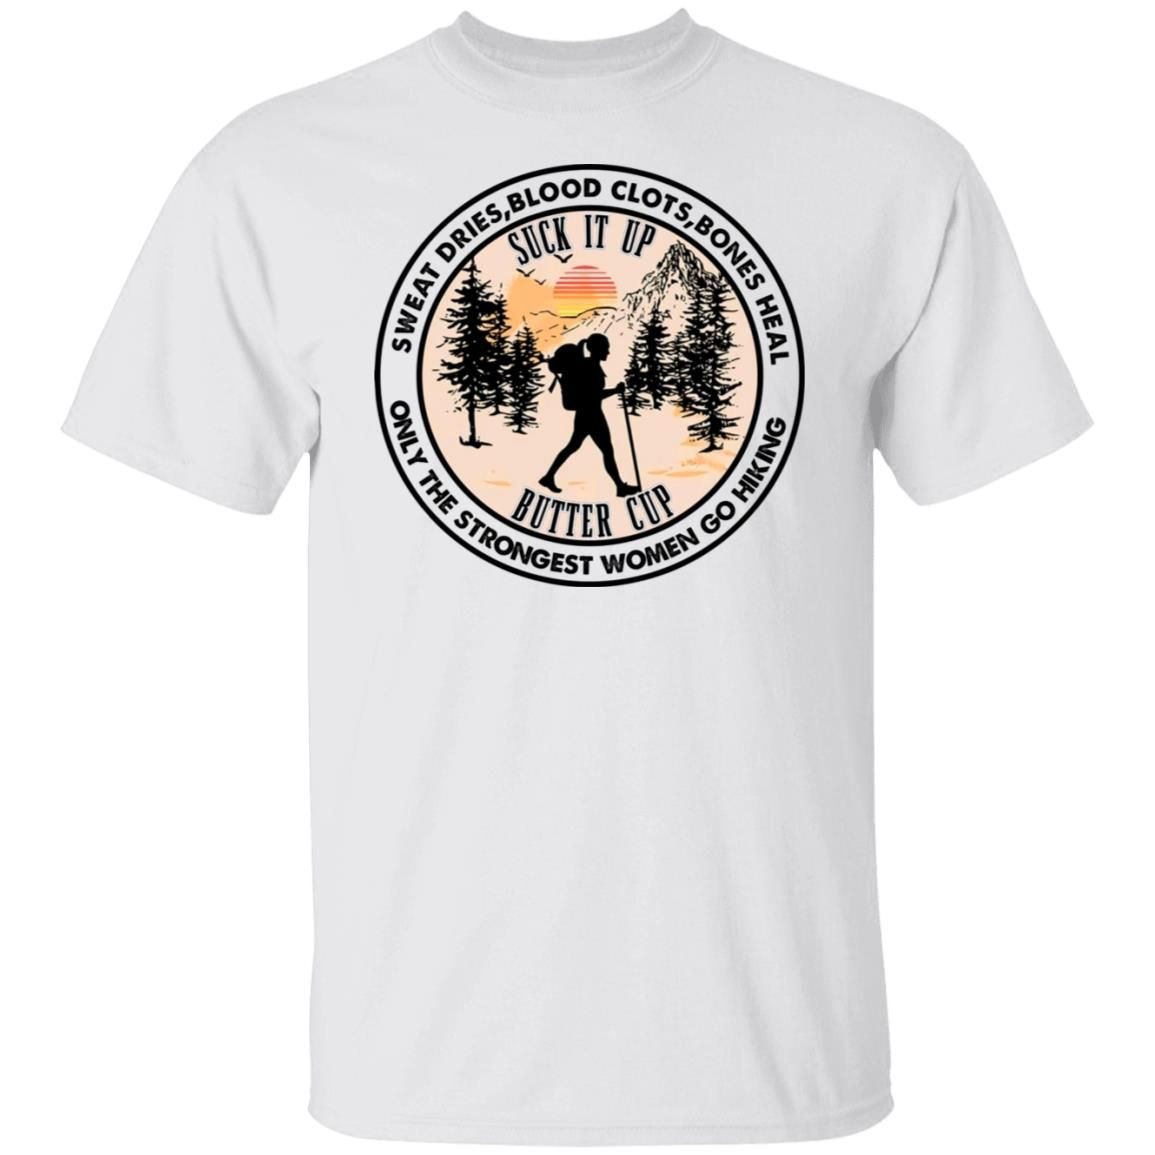 Sweat drives blood clots bones heal butter cup only the strongest women go hiking shirt